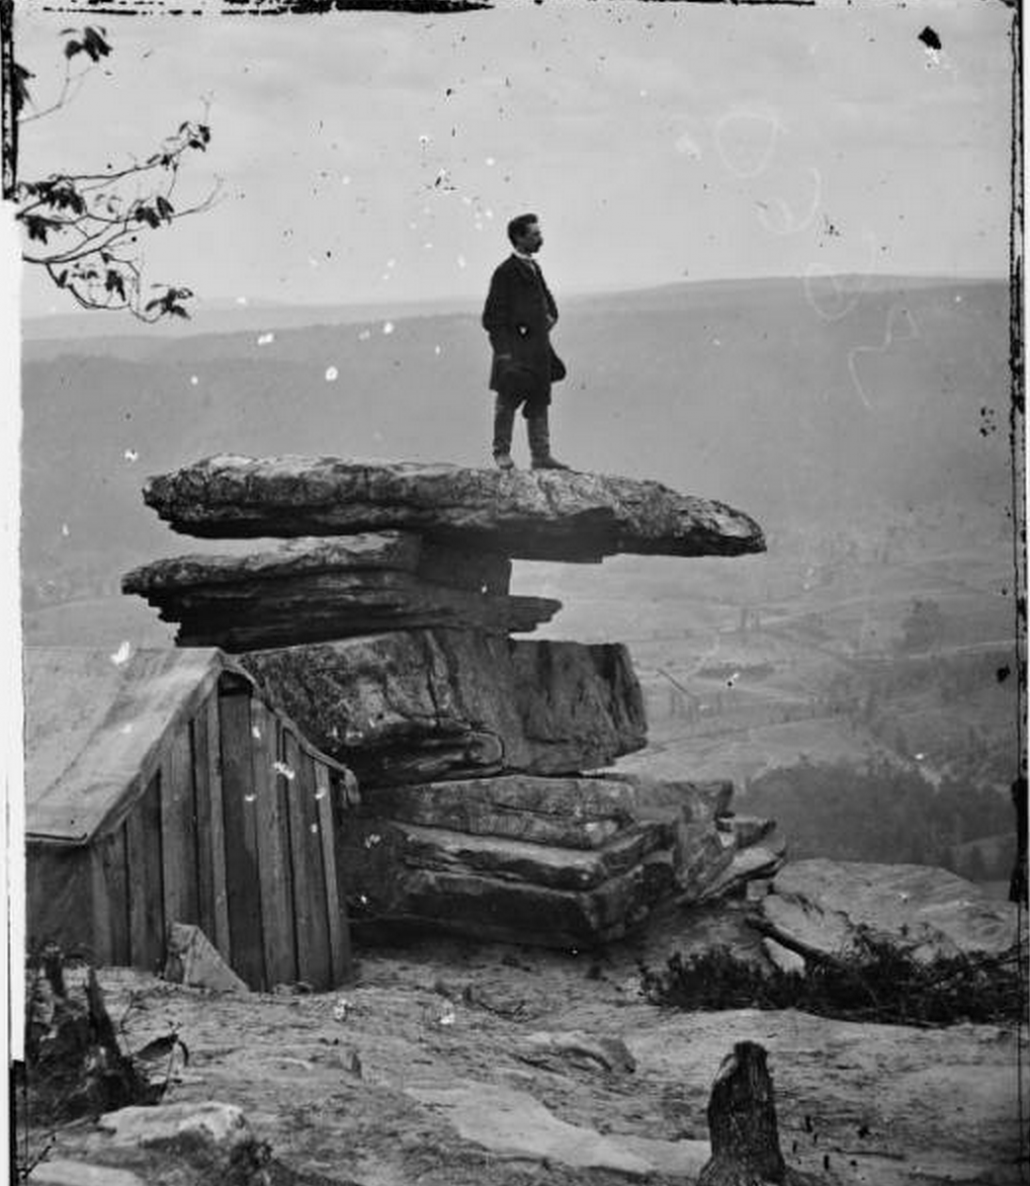 Man poses on Umbrella ROck 1864